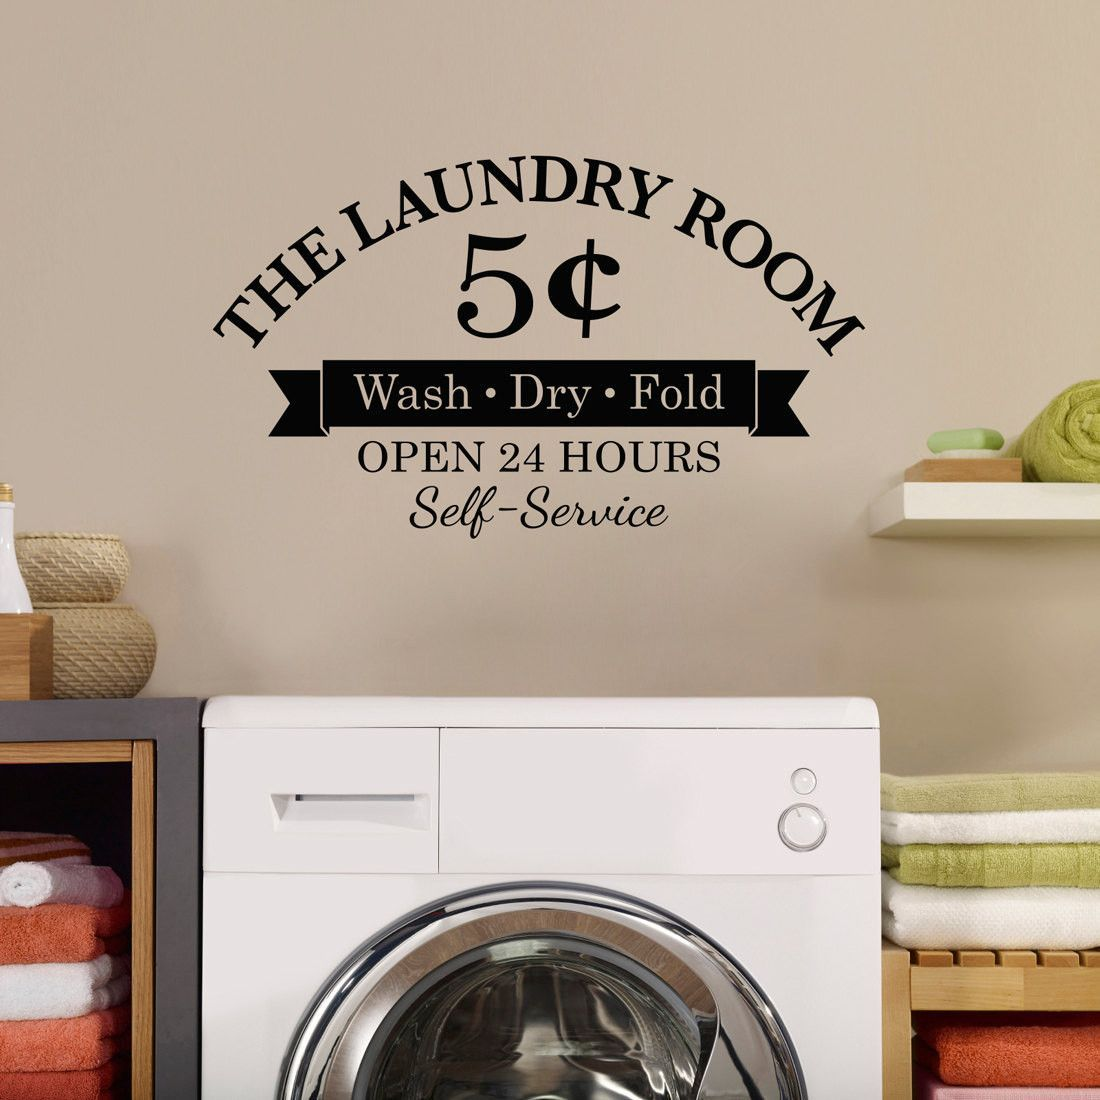 Laundry Room Wall Appliques The Laundry Room 5 Cents Wall Decal  Medium  Washing Dryer